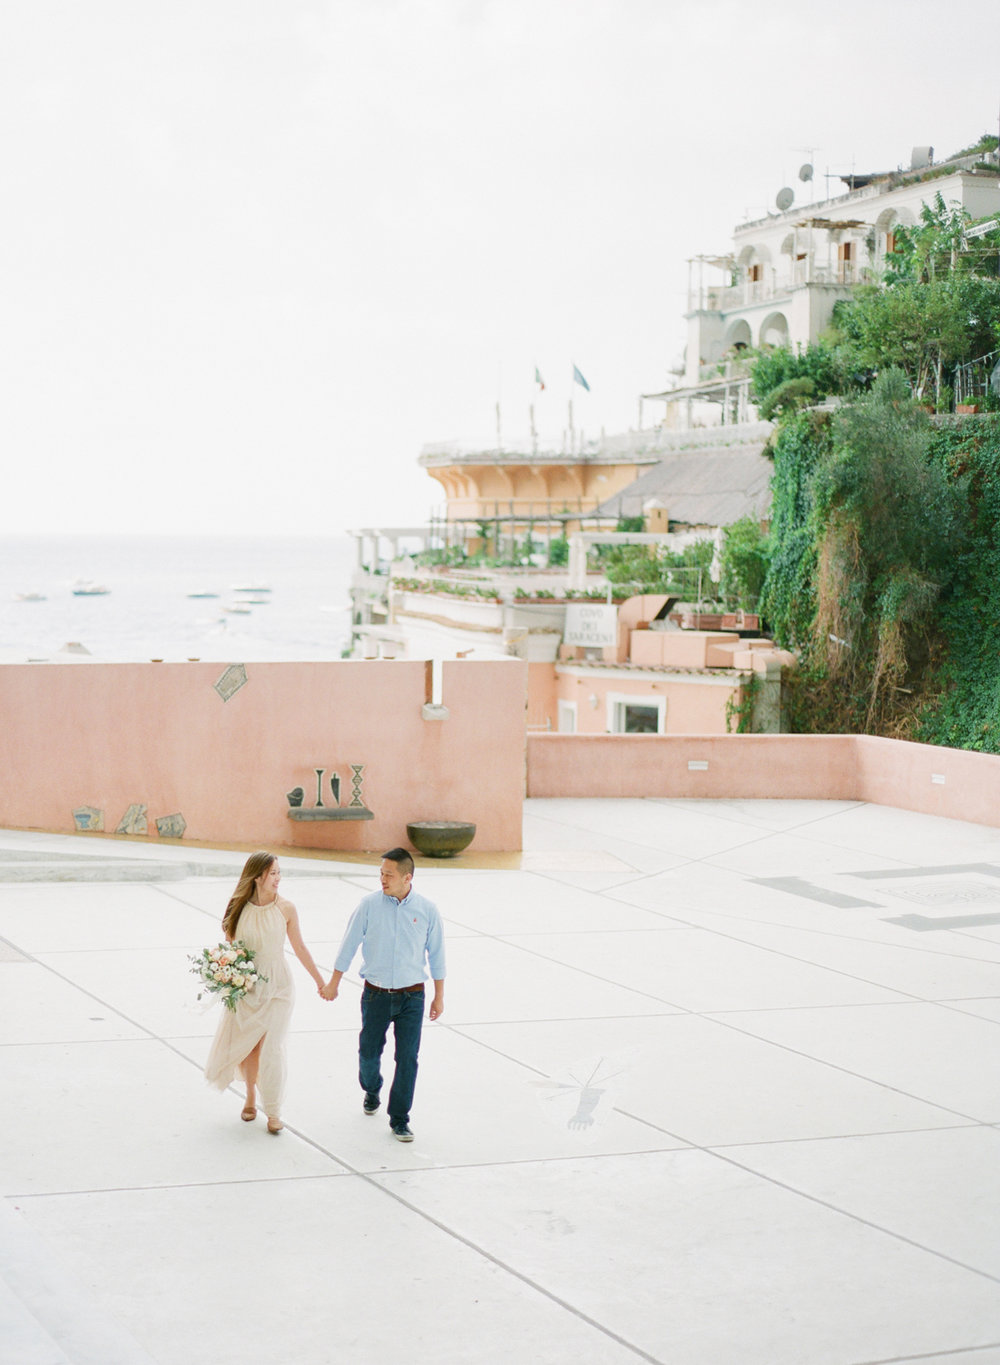 positano wedding anniversary amalfi coast wedding photographer positano film wedding photographer 73.JPG